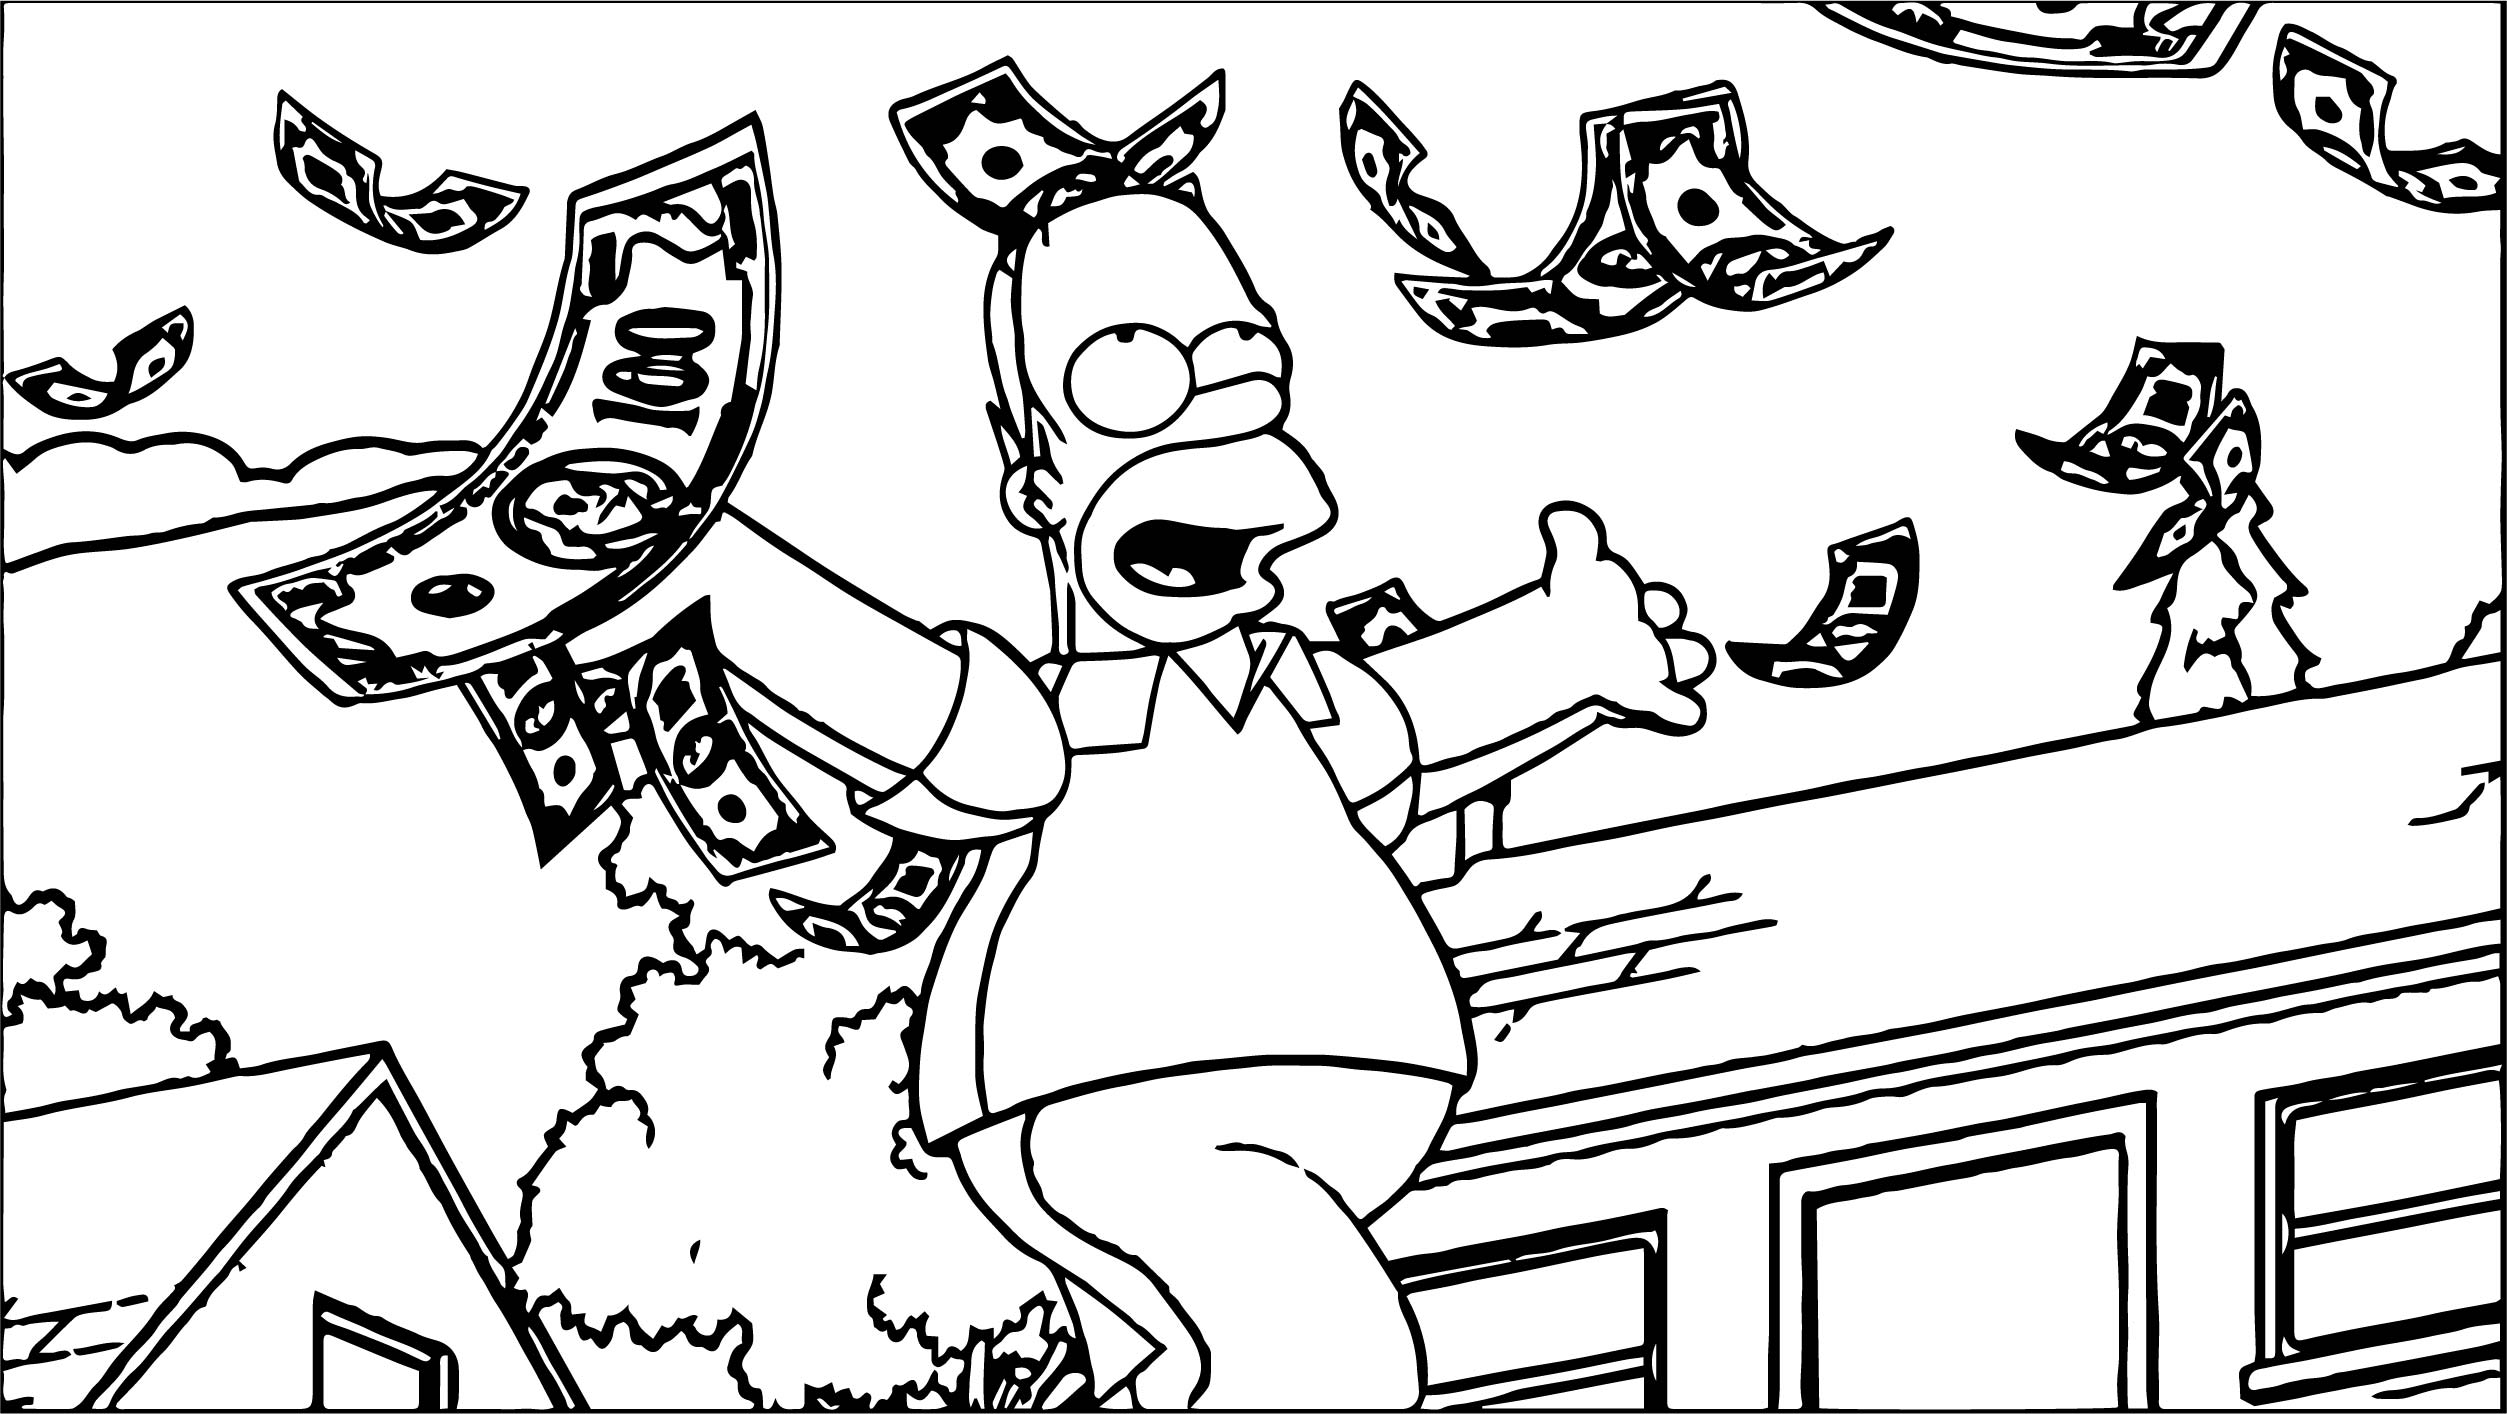 Simpsons Money Coloring Page | Wecoloringpage